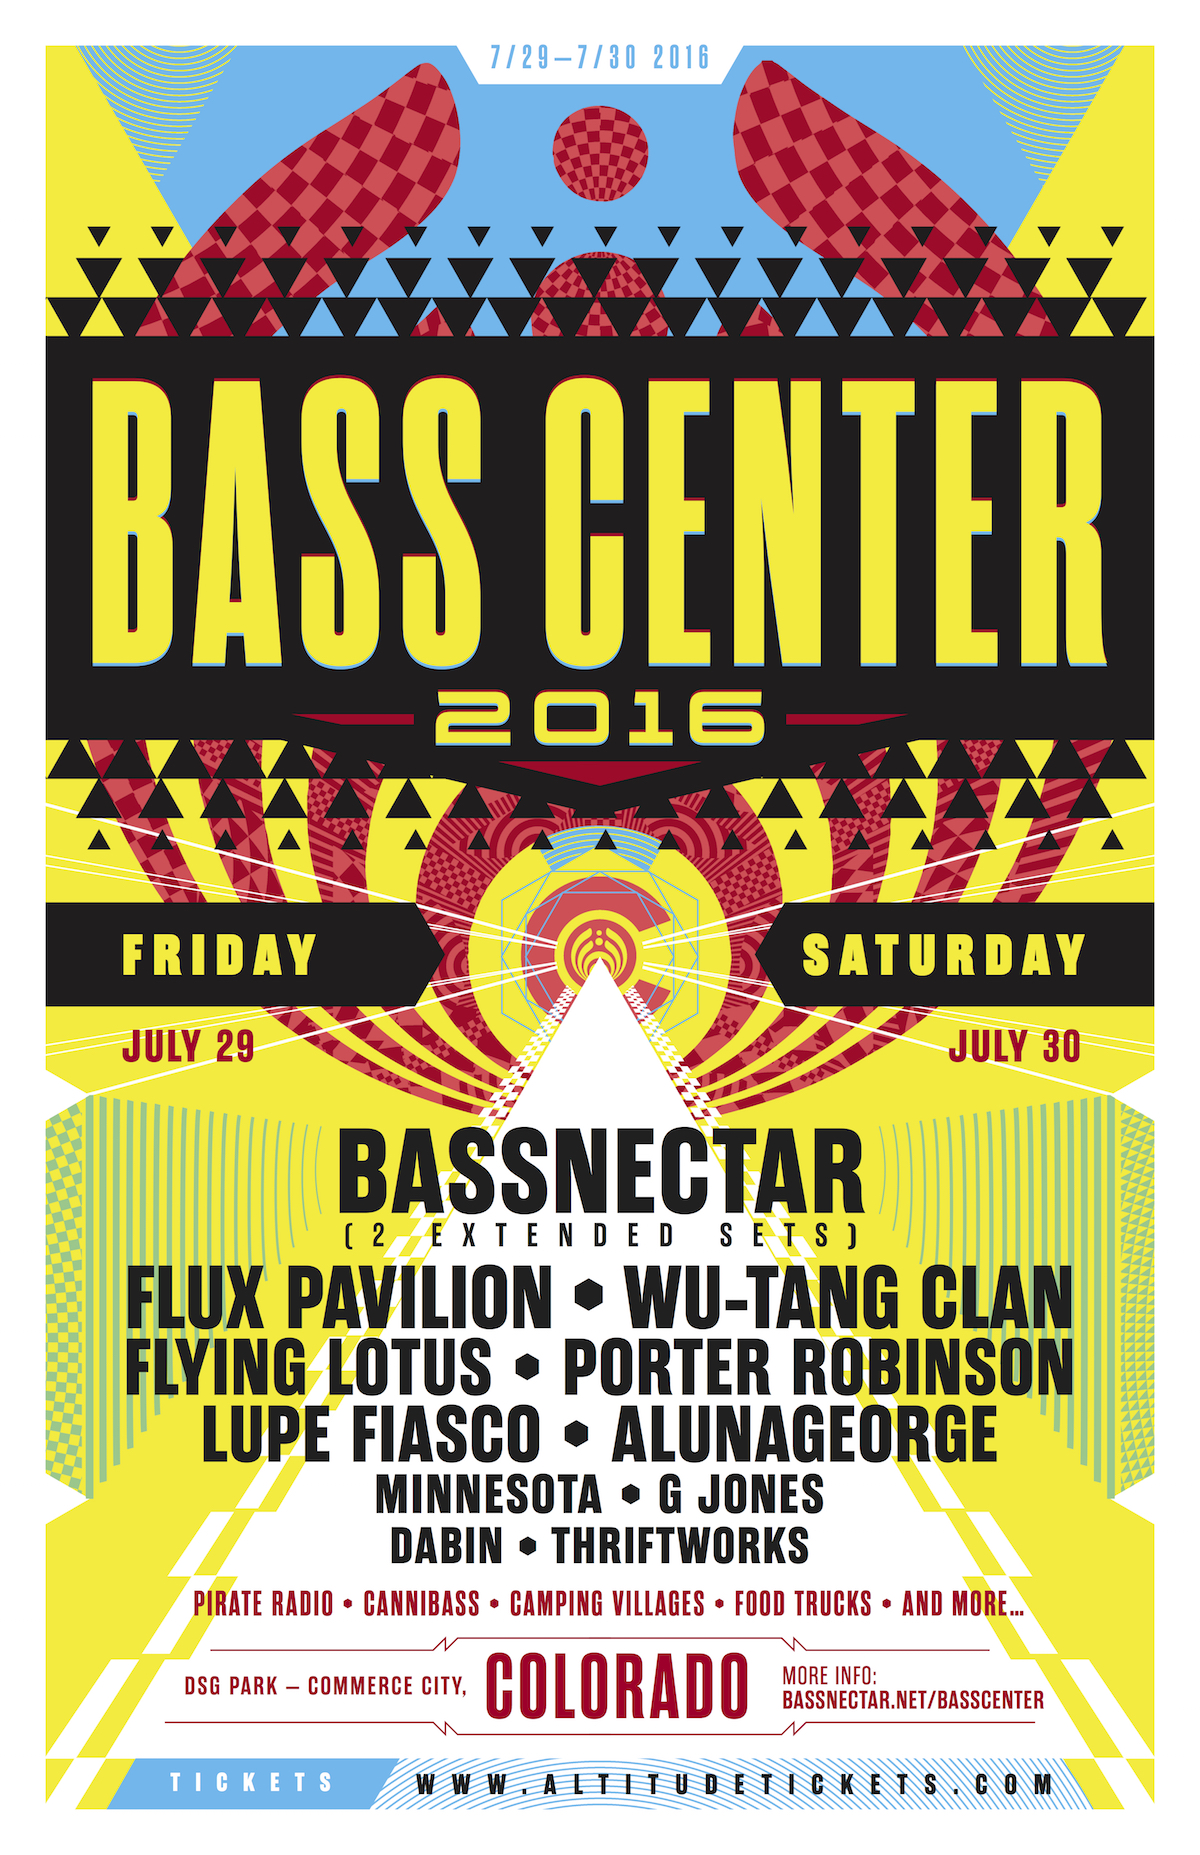 Bassnectar-Bass-Center-2016-Colorado-1200px